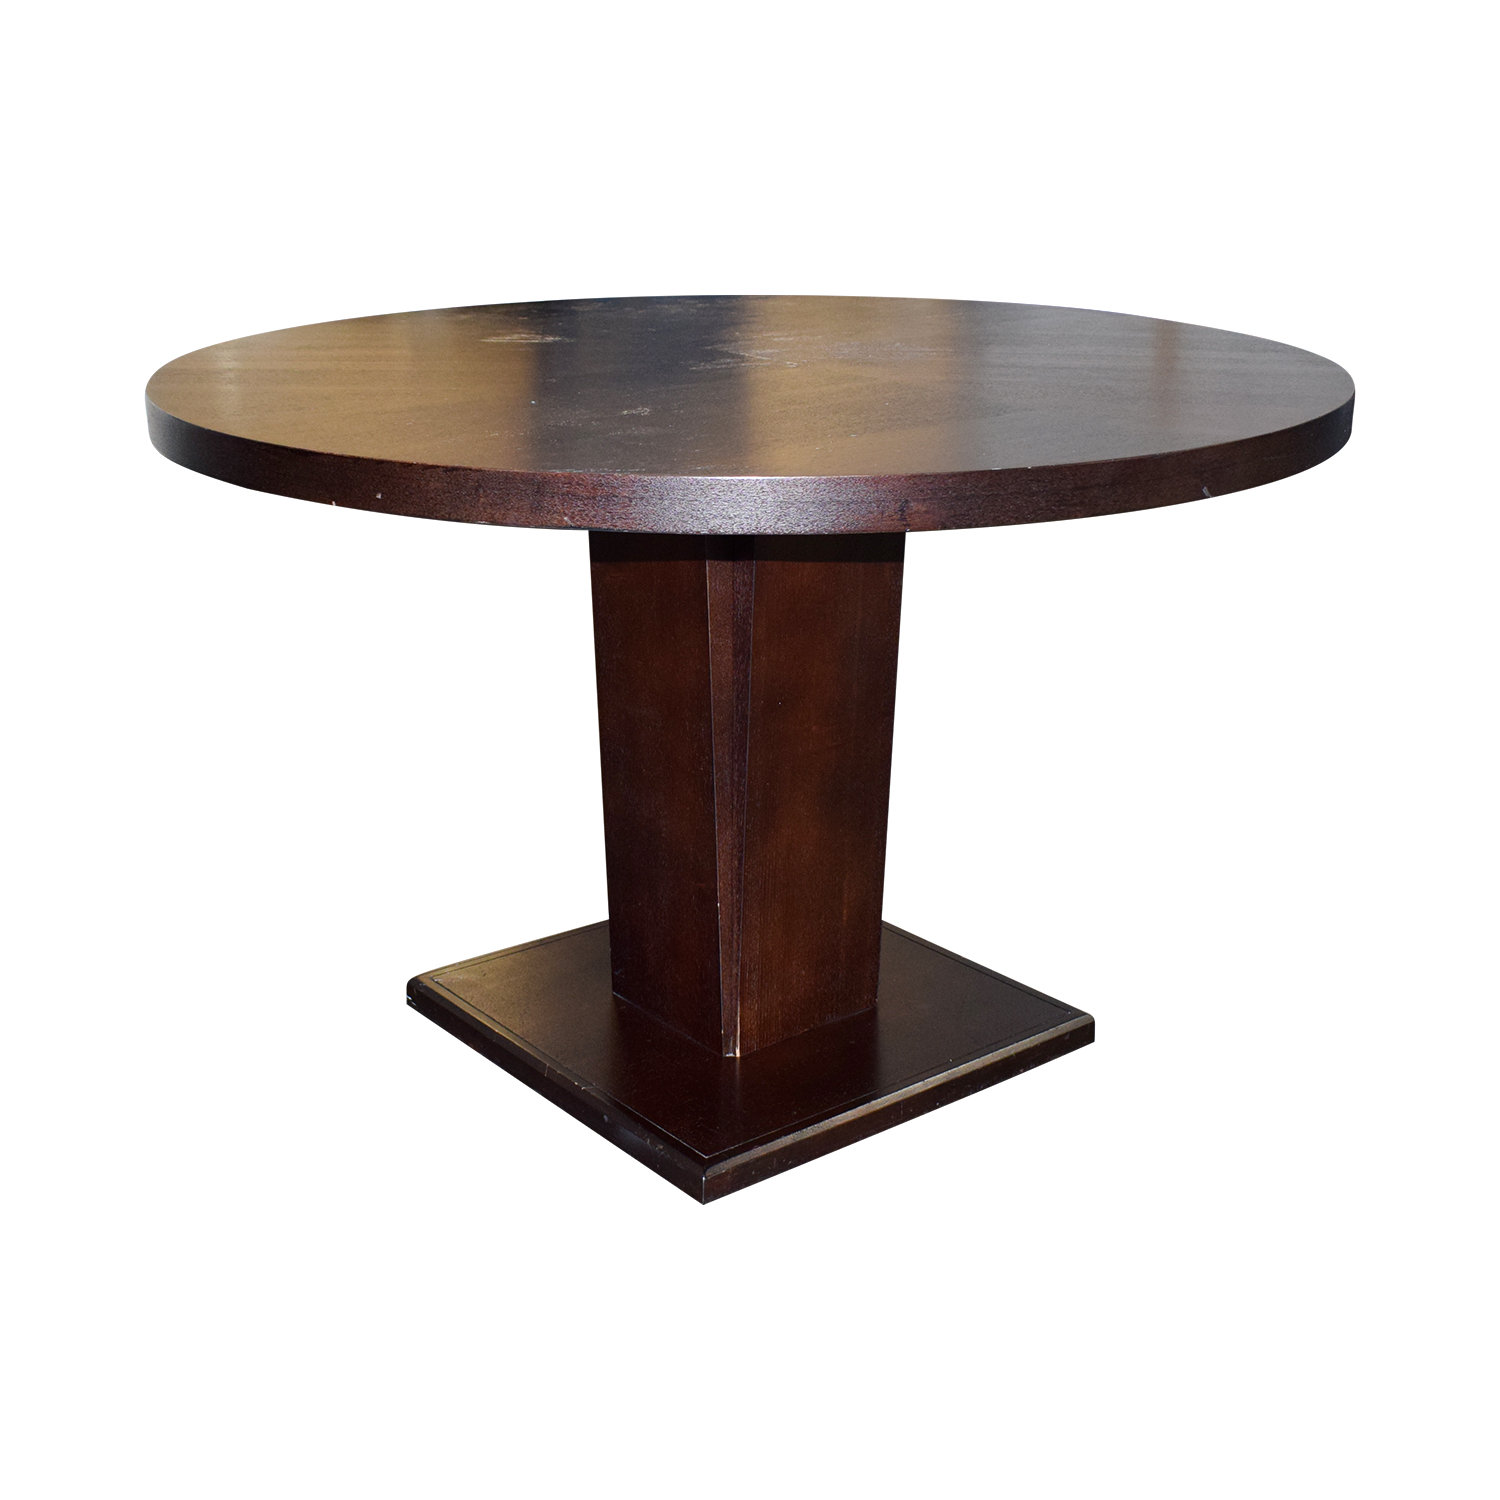 Wood Round Dining Table: Round Wood Dining Table / Tables